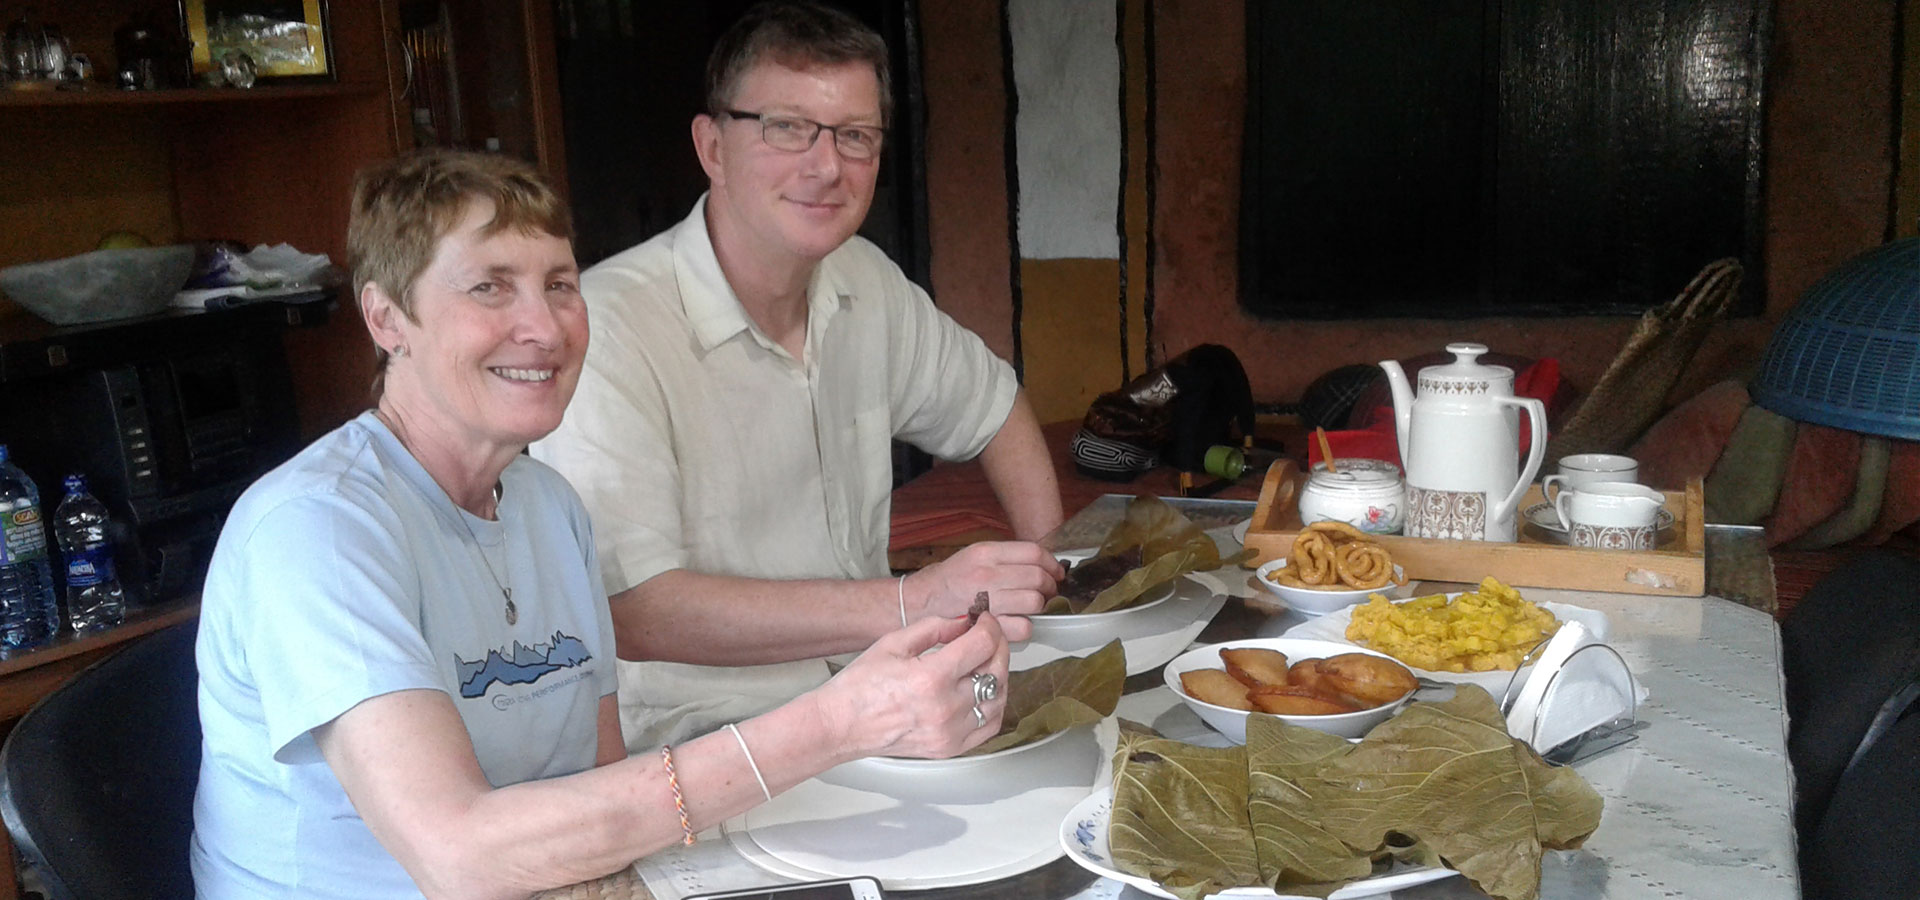 Sri Lanka cooking demonstration, Learn how to cook a Sri Lankan meal, Sri Lanka food tours